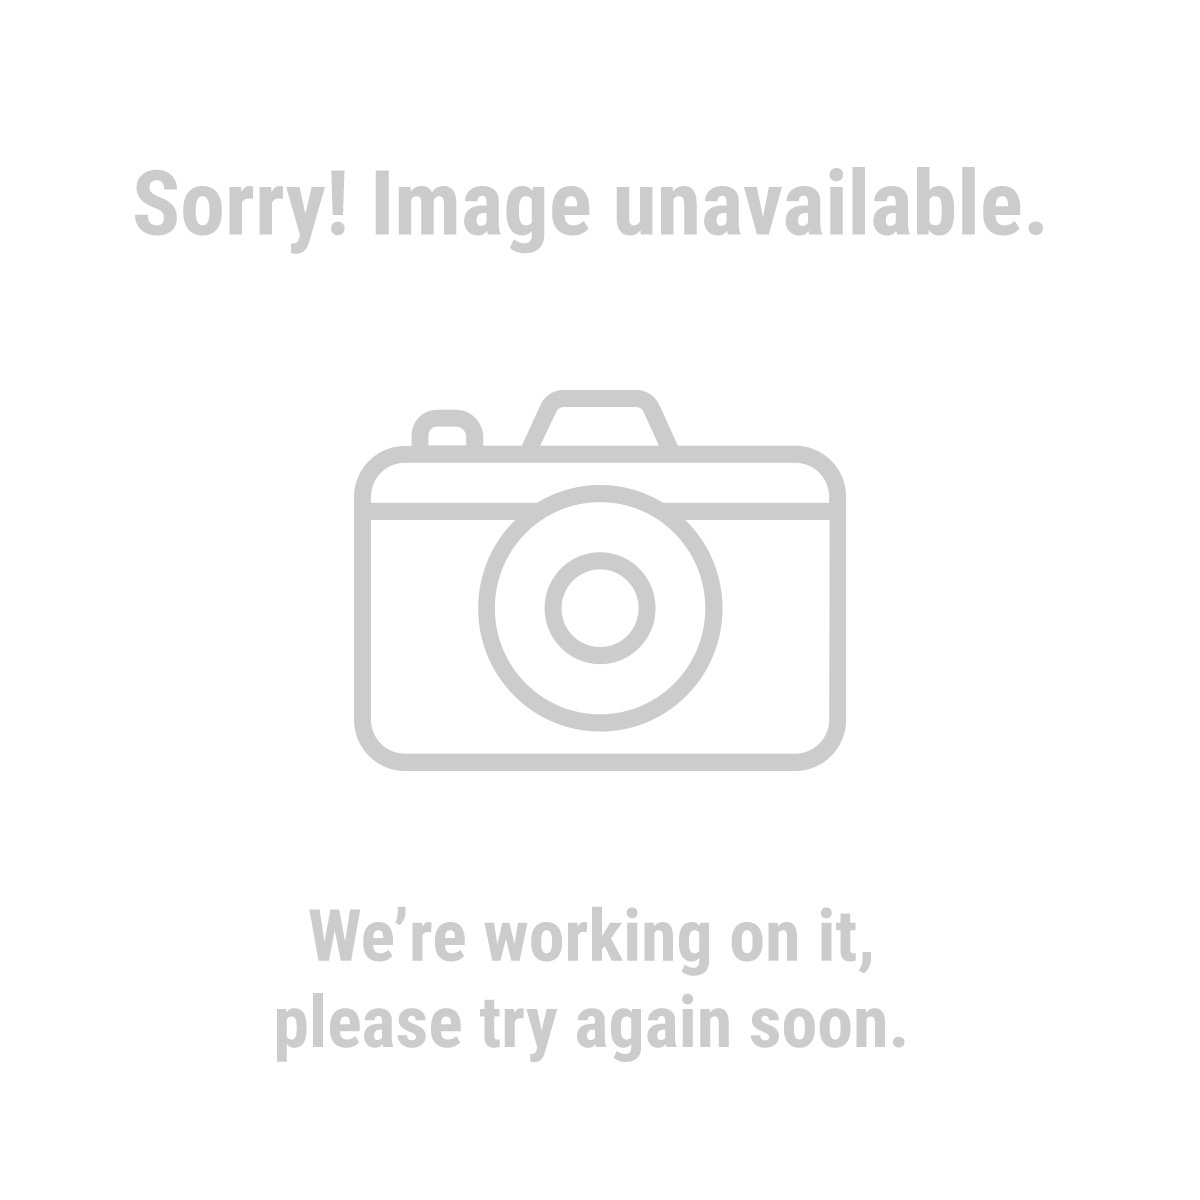 Haul Master Automotive 69326 Solid Rubber Wheel Chock